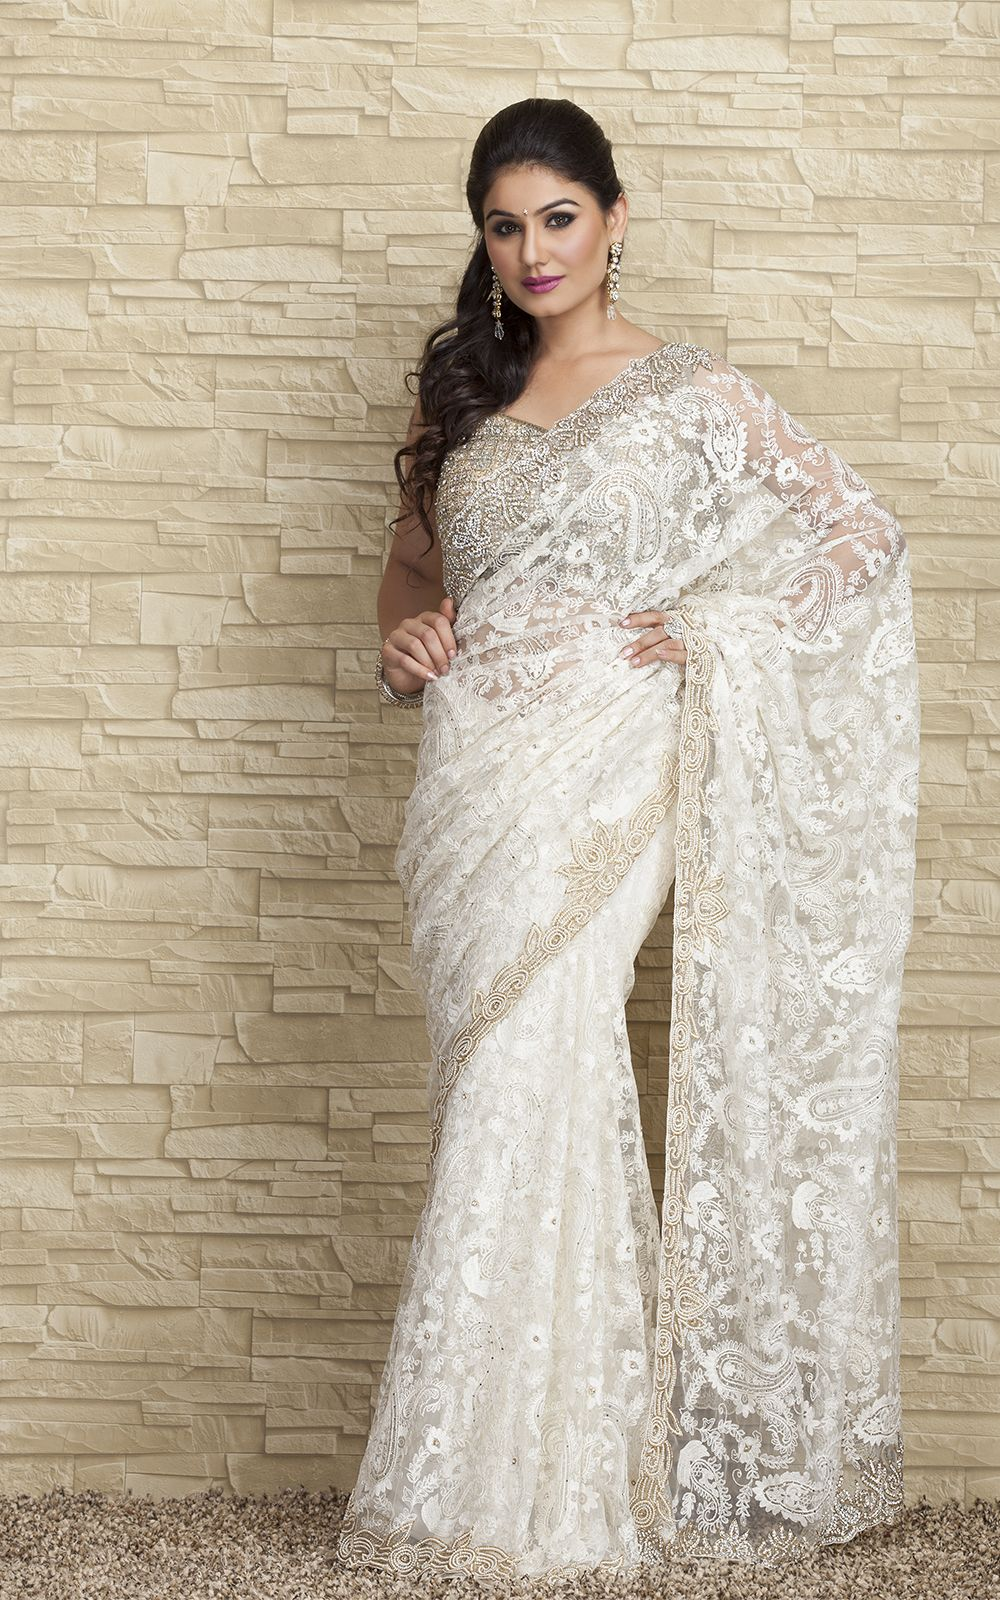 The Traditional Wear That Symbolizes True Indian Women Beauty The Beautiful White Saree To Dress At Party Or Outing With Family Saree Fashion Snapdeal